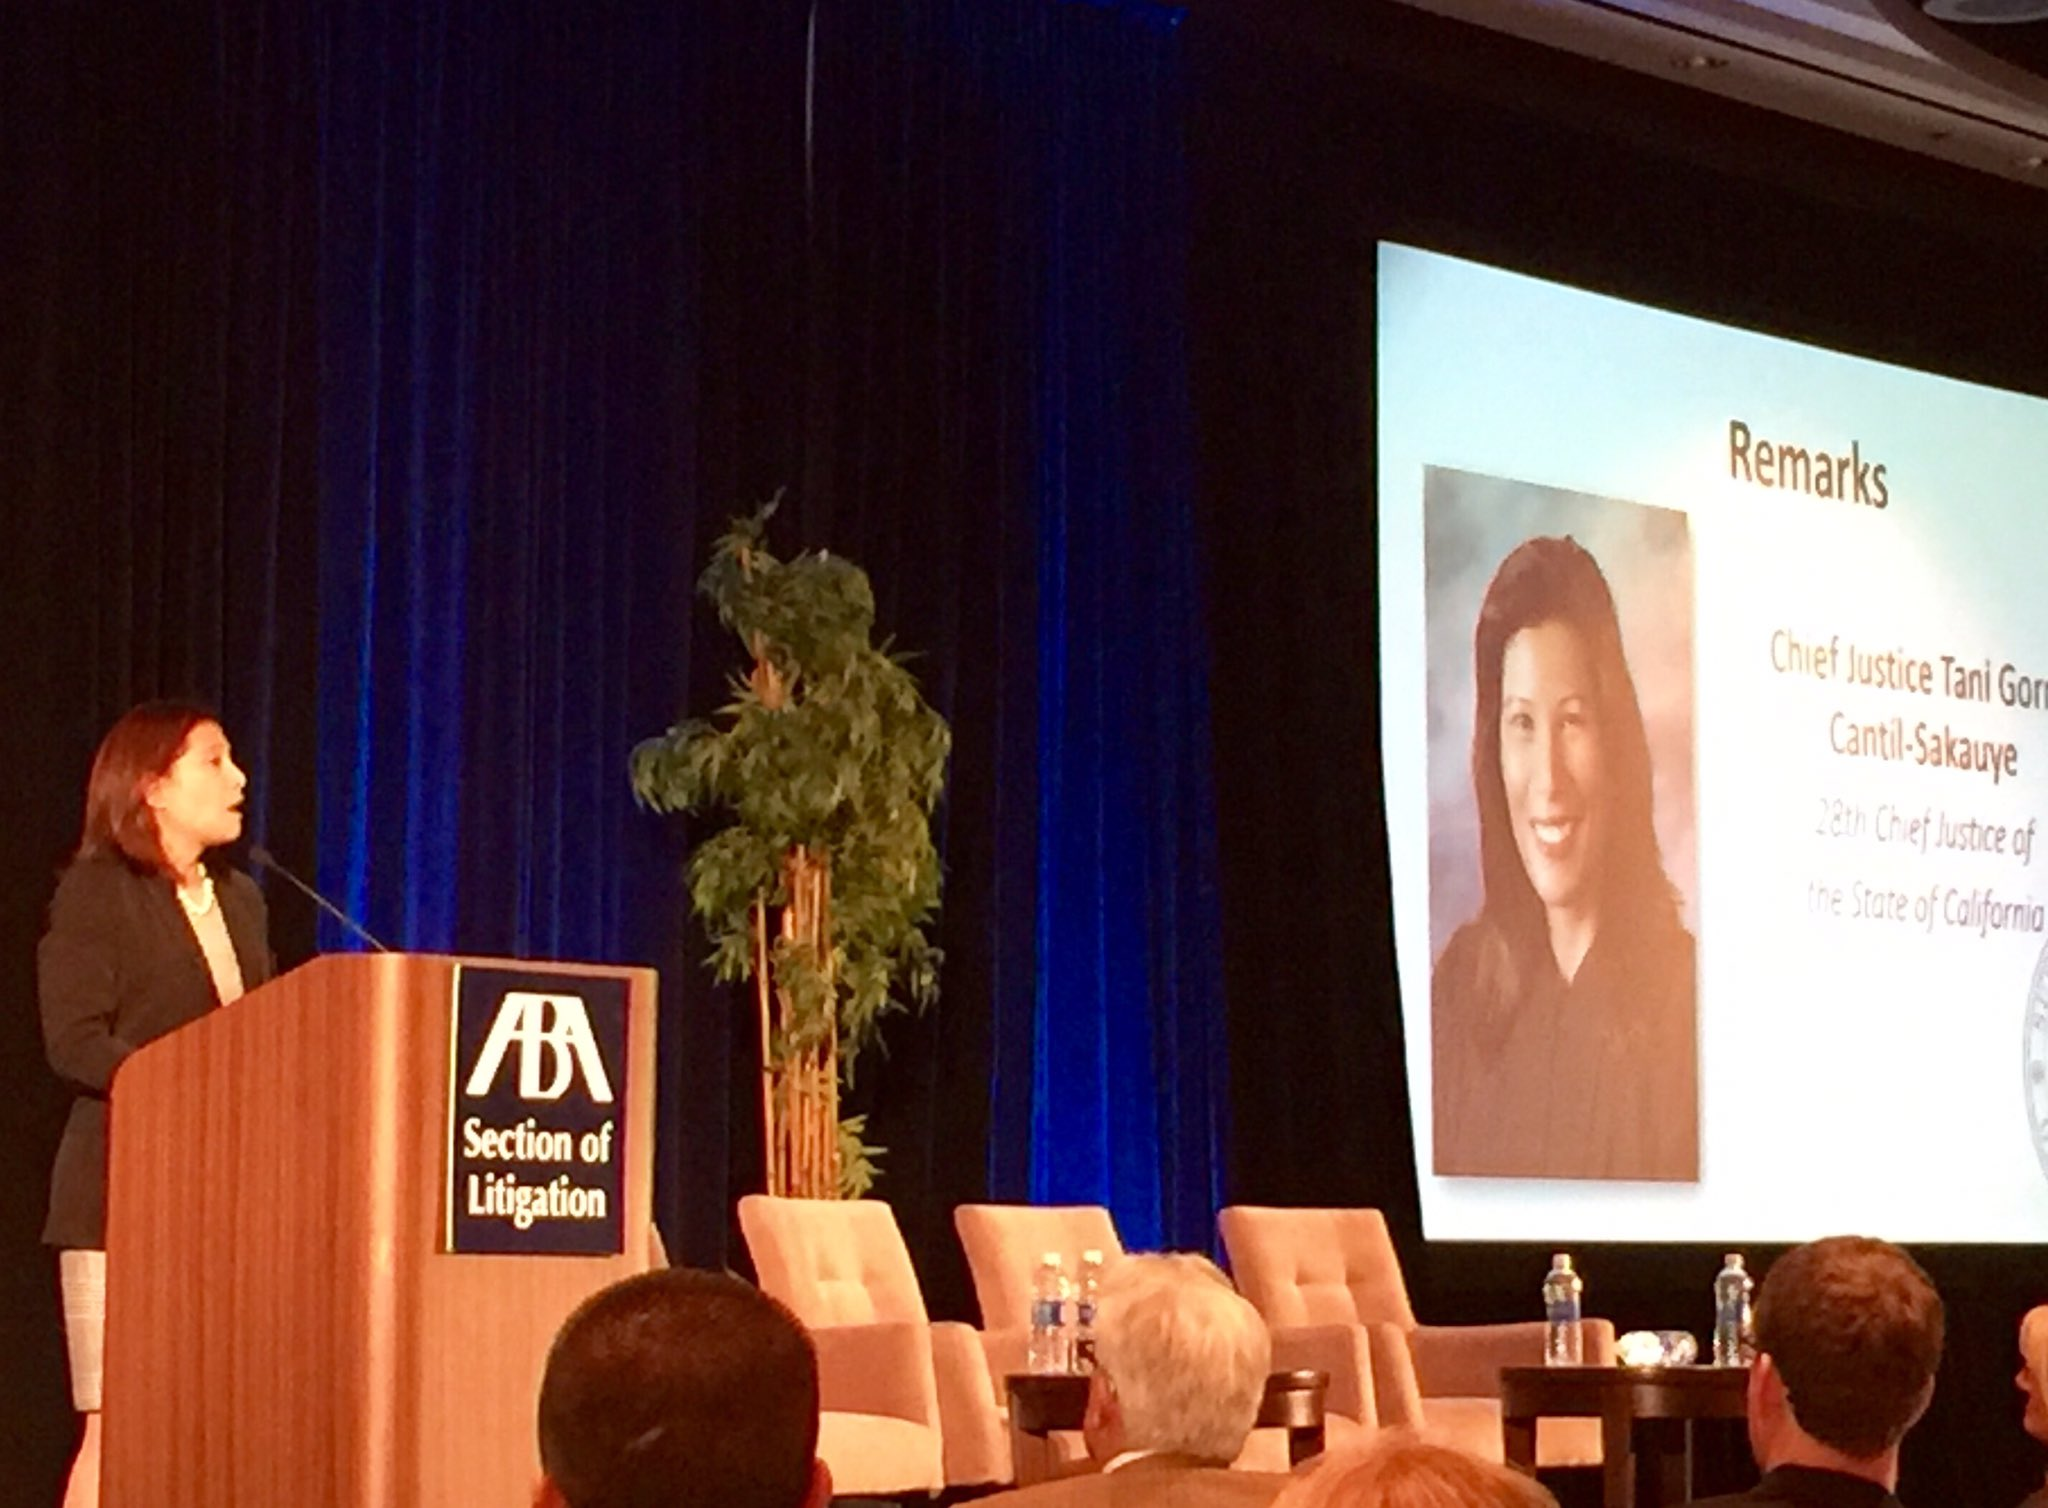 "CA Chief Justice Tani Cantil-Sakauye at #LitigationSAC on why courts should b ""sensitive places"" with no immigration raids. 👍🏽⚖️ #ThankYou https://t.co/XY6EXaXBh0"